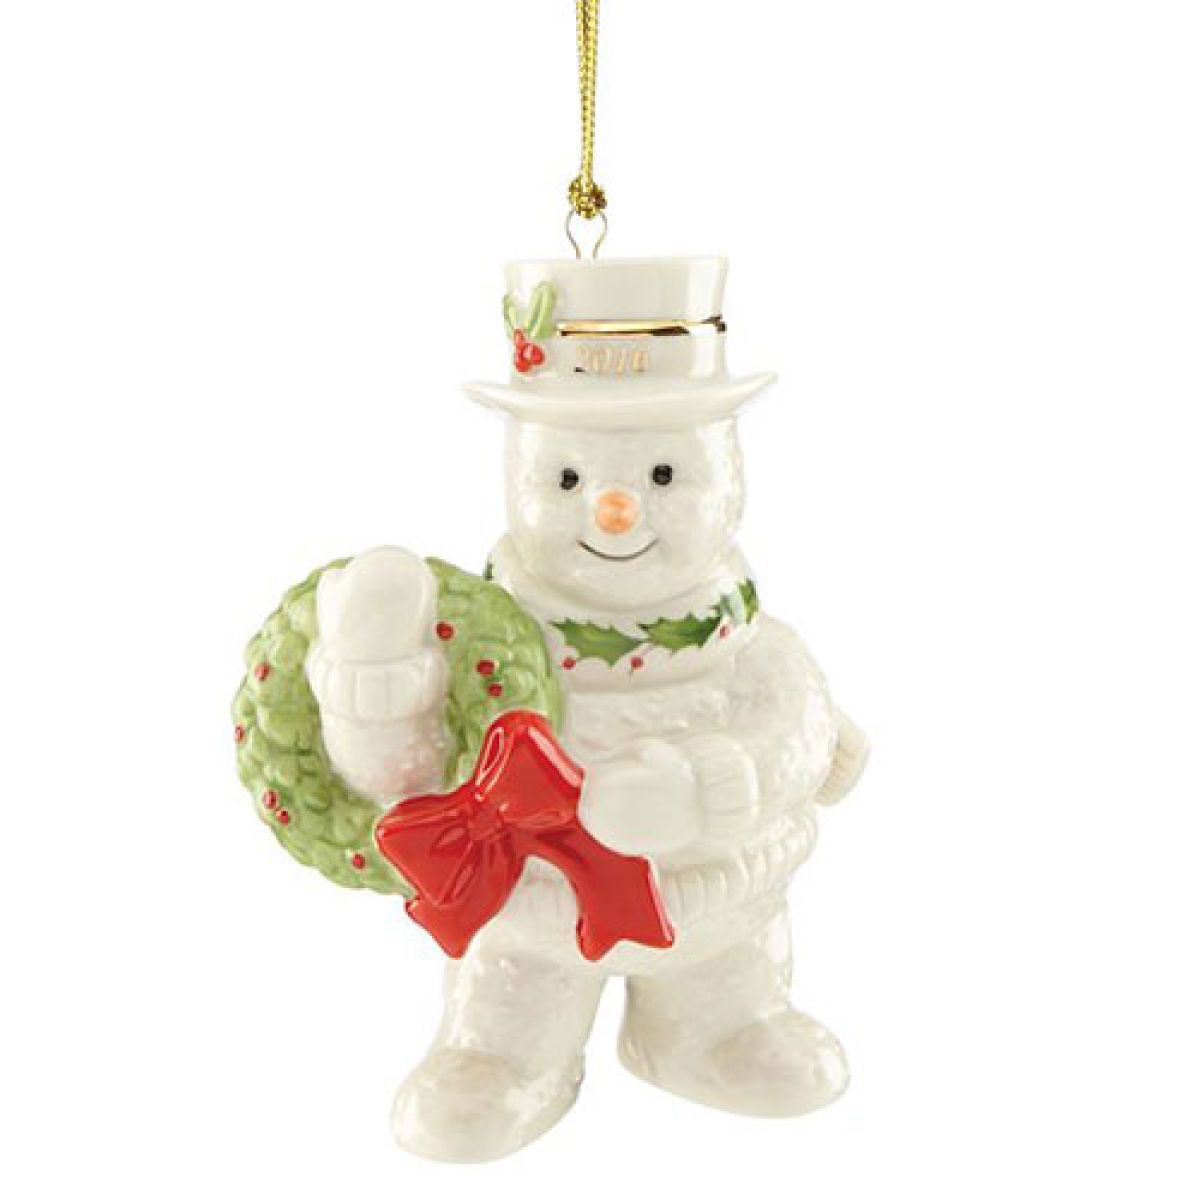 lenox 2016 happy holly days snowman ornament boscovs lenox christmas ornaments snowman ornaments - Boscovs Christmas Decorations